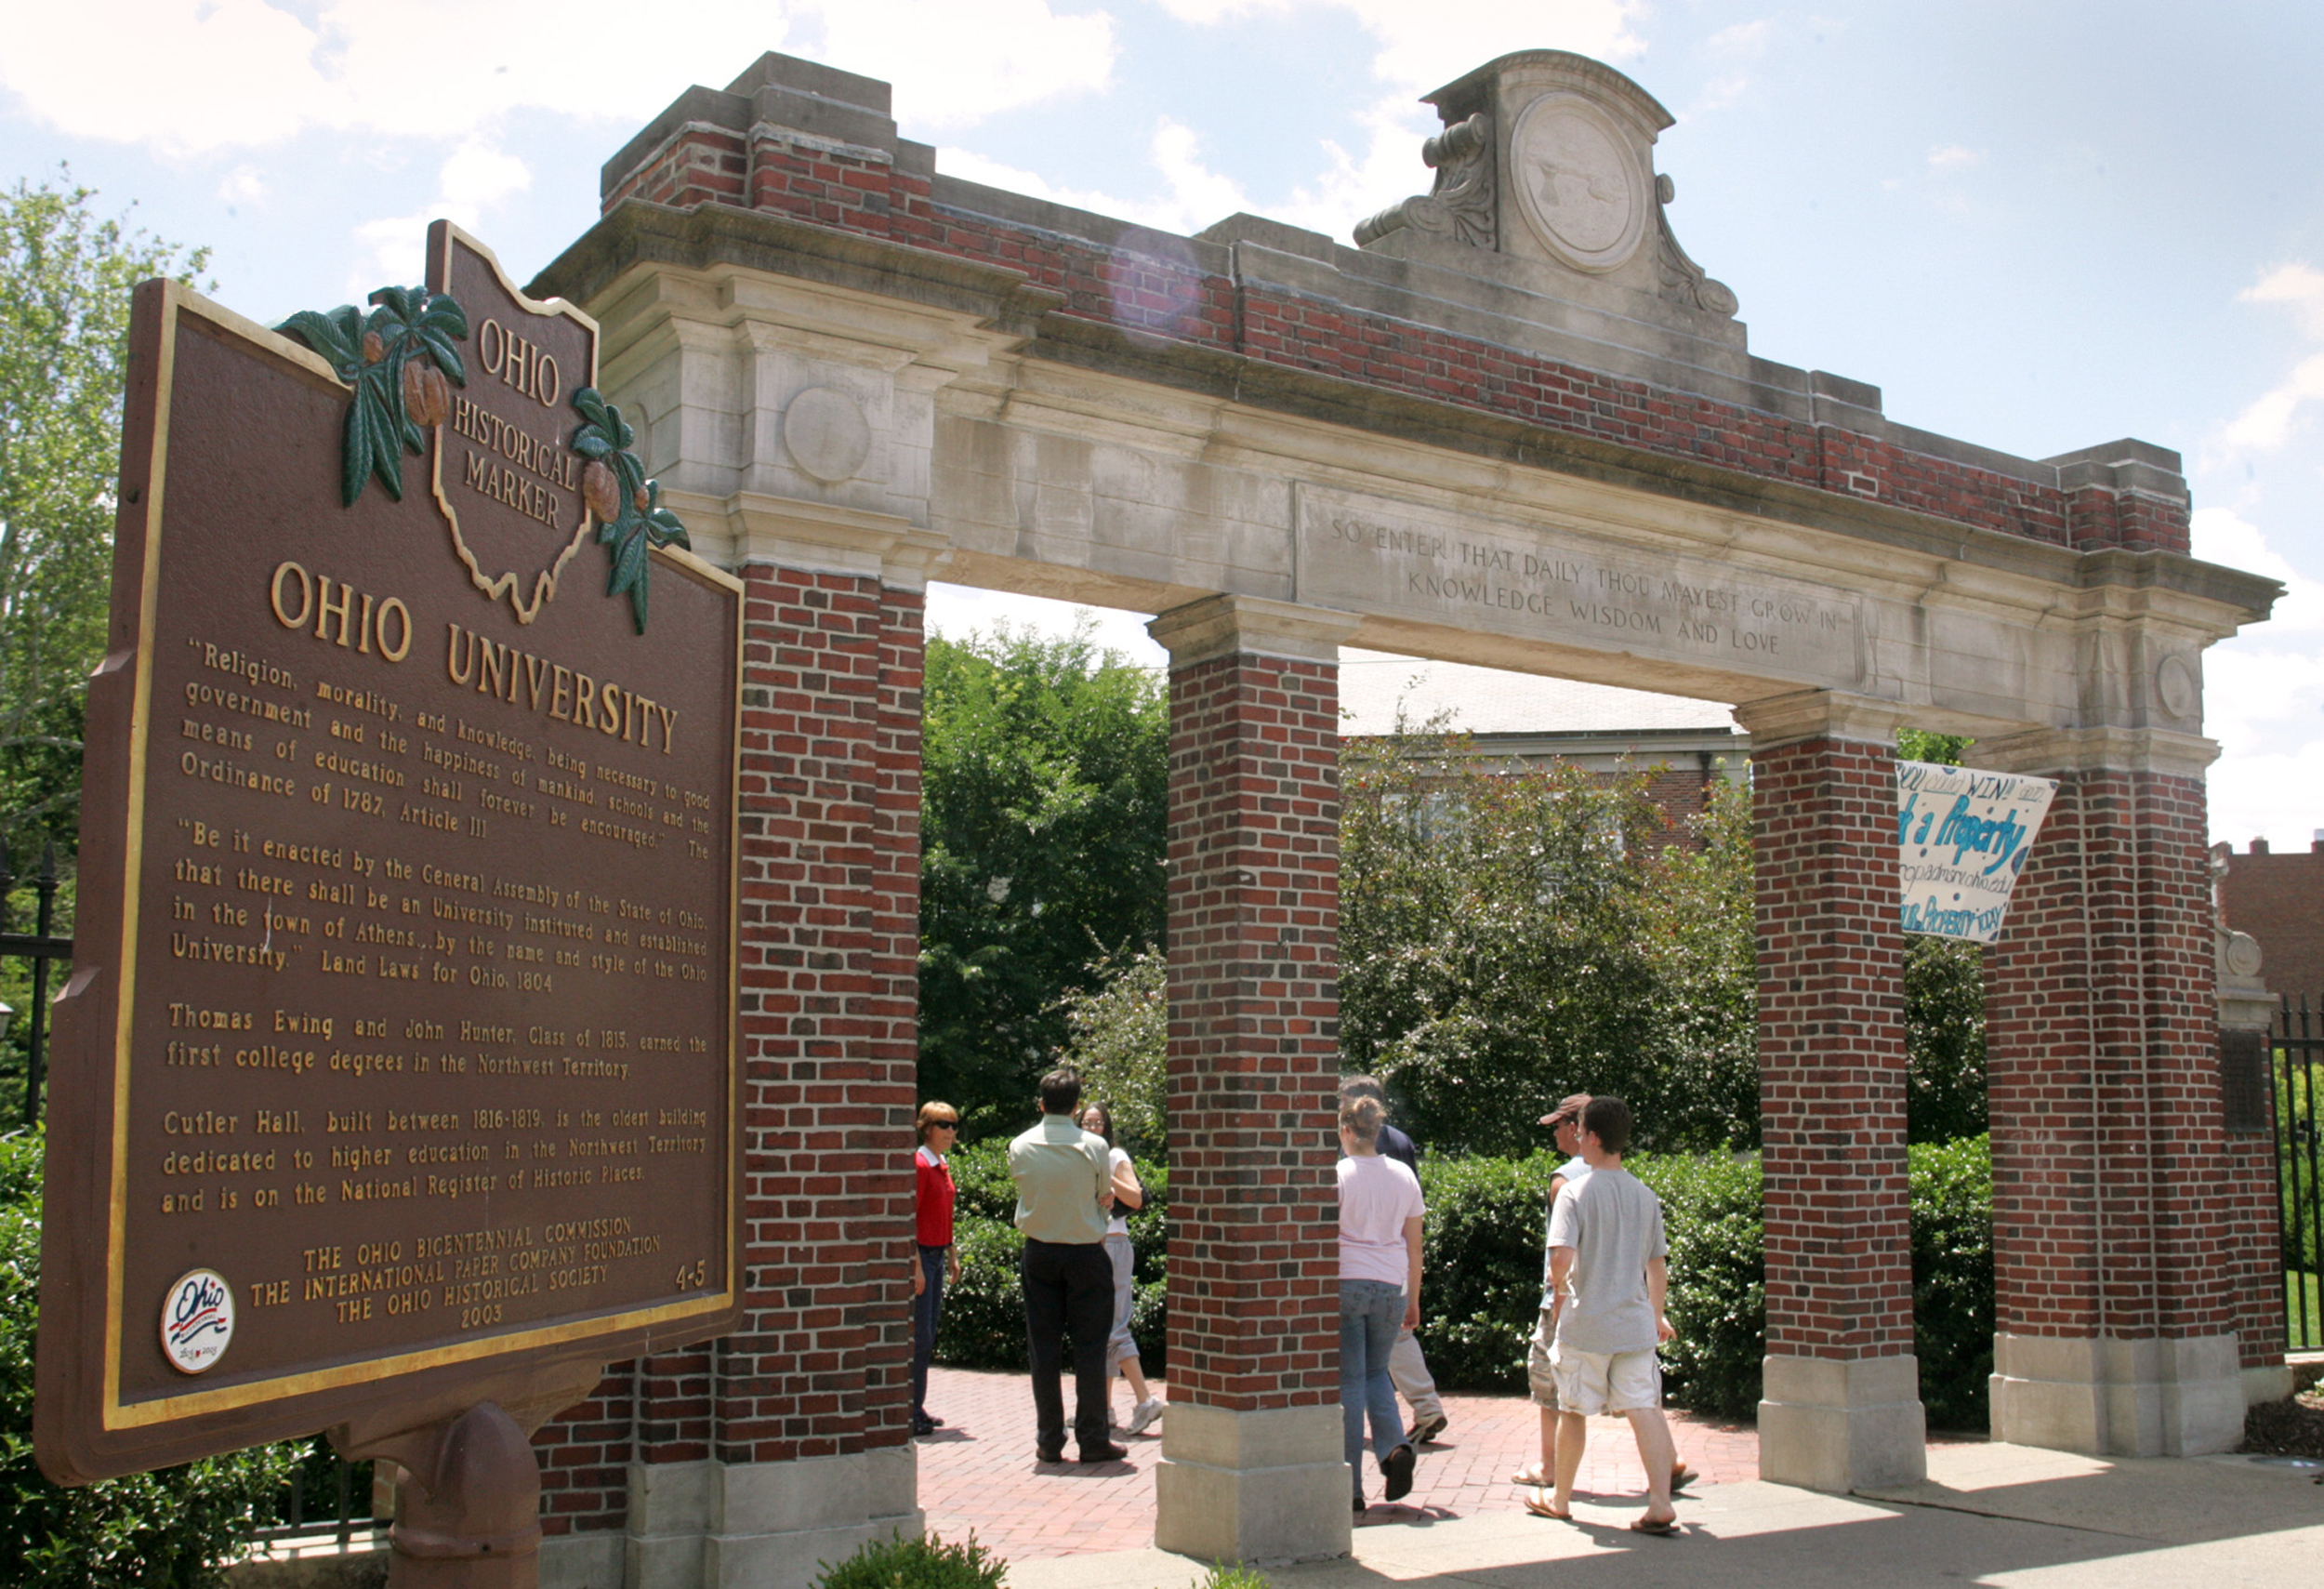 Ohio University suspends all fraternities over hazing allegations